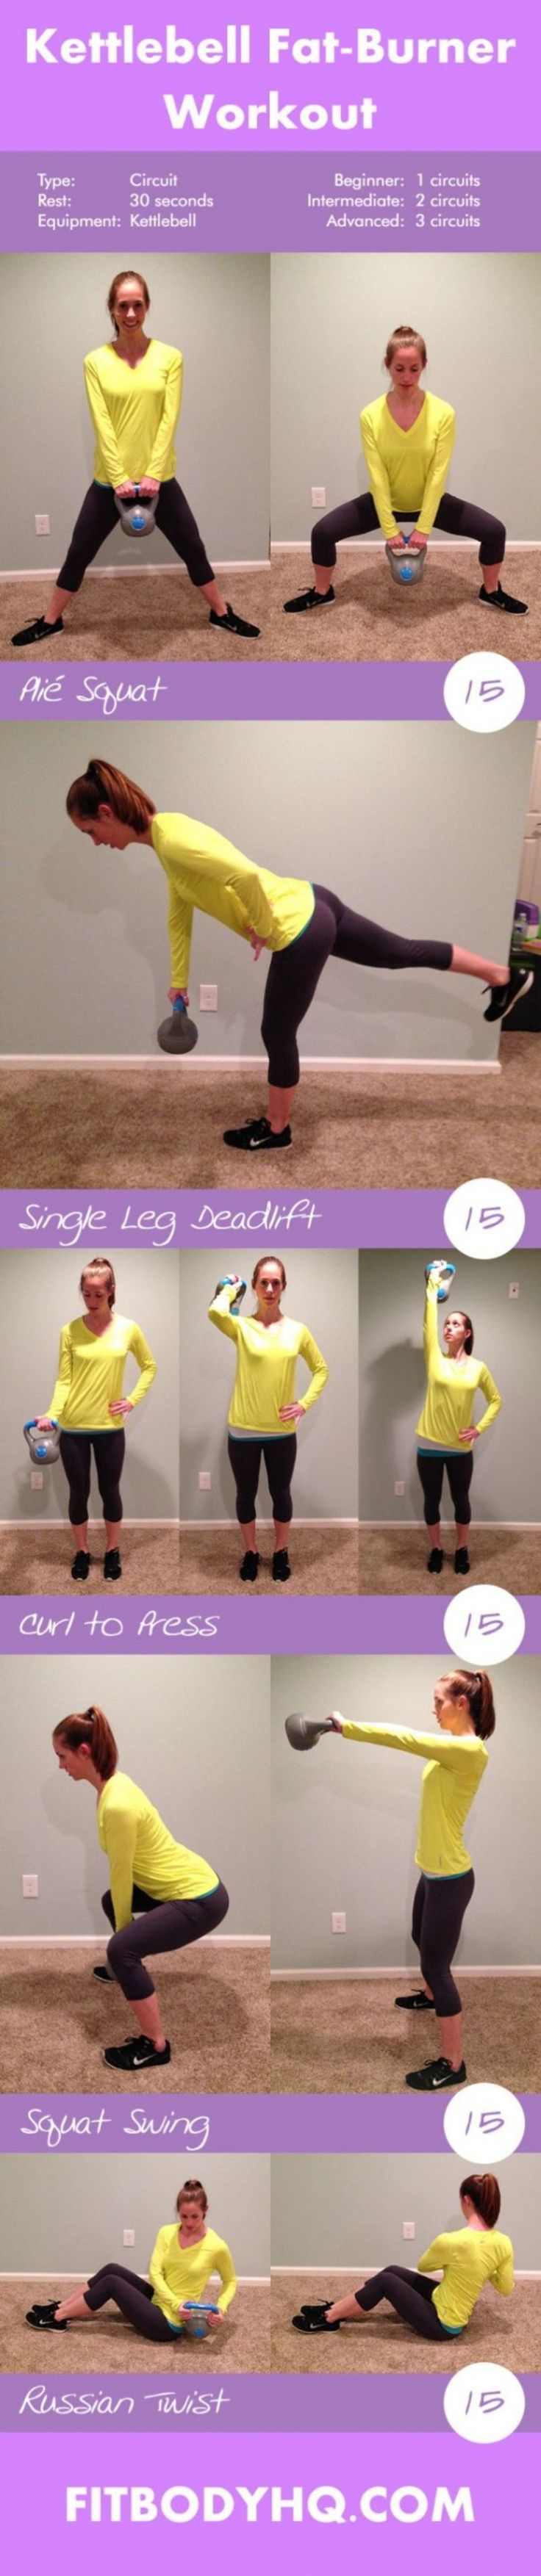 Kettlebell Fat Burner Workout | Posted By: NewHowToLoseBellyFat.com